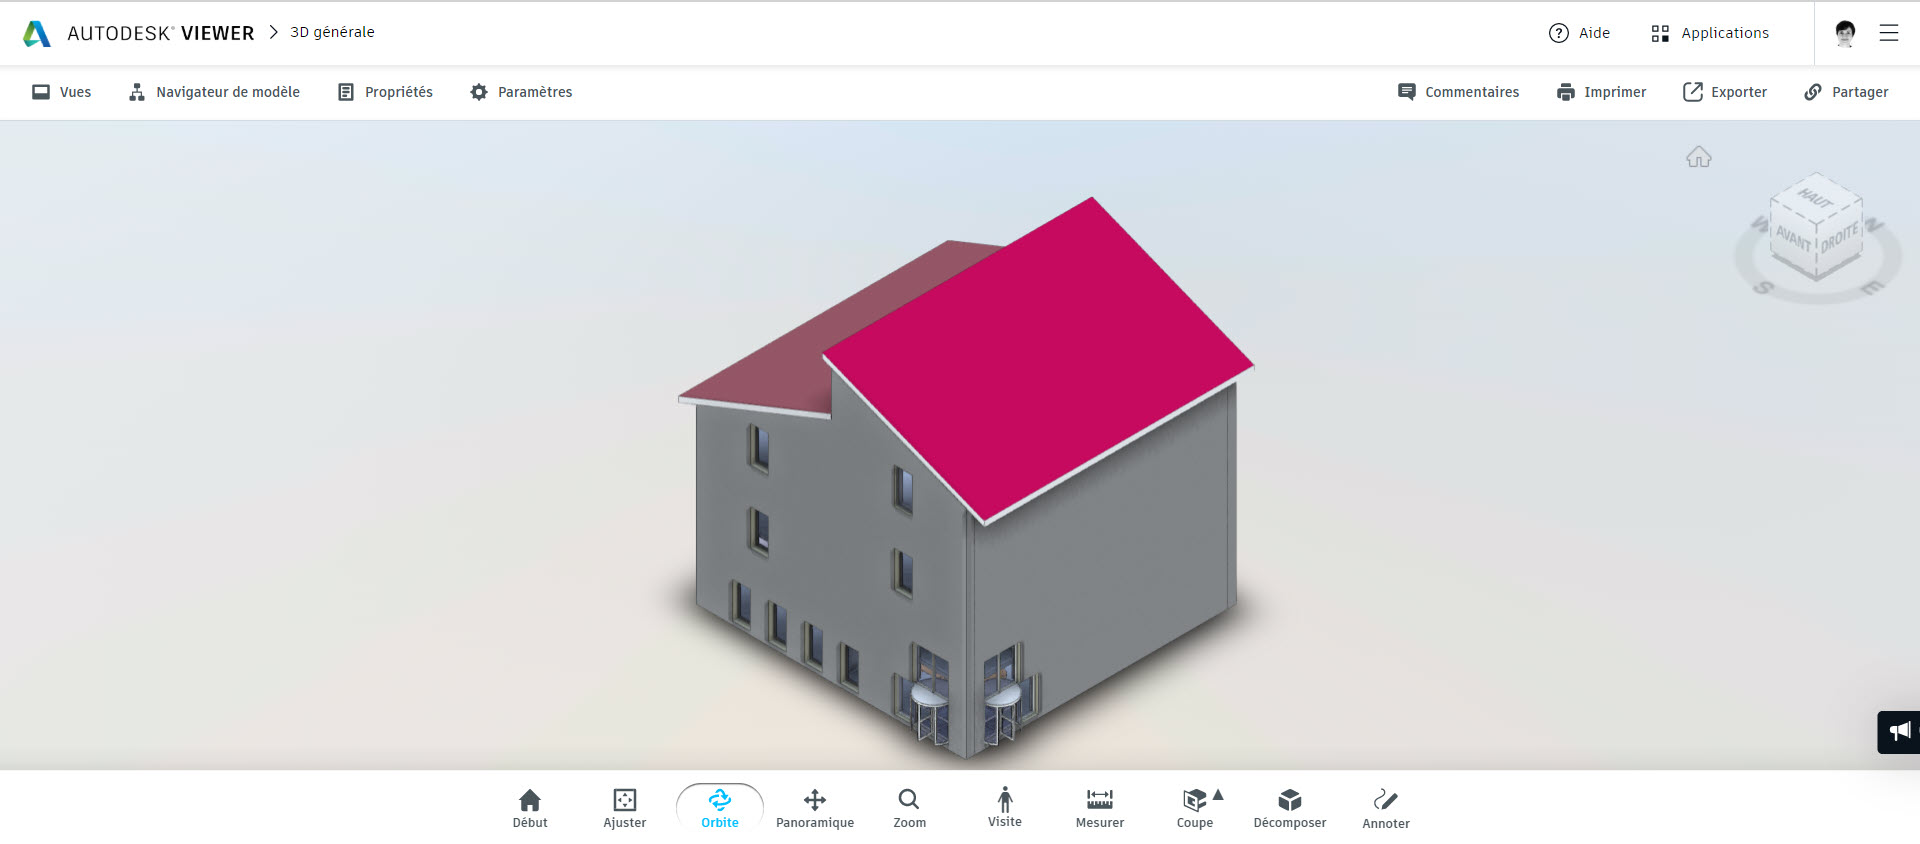 4 autodesk viewer